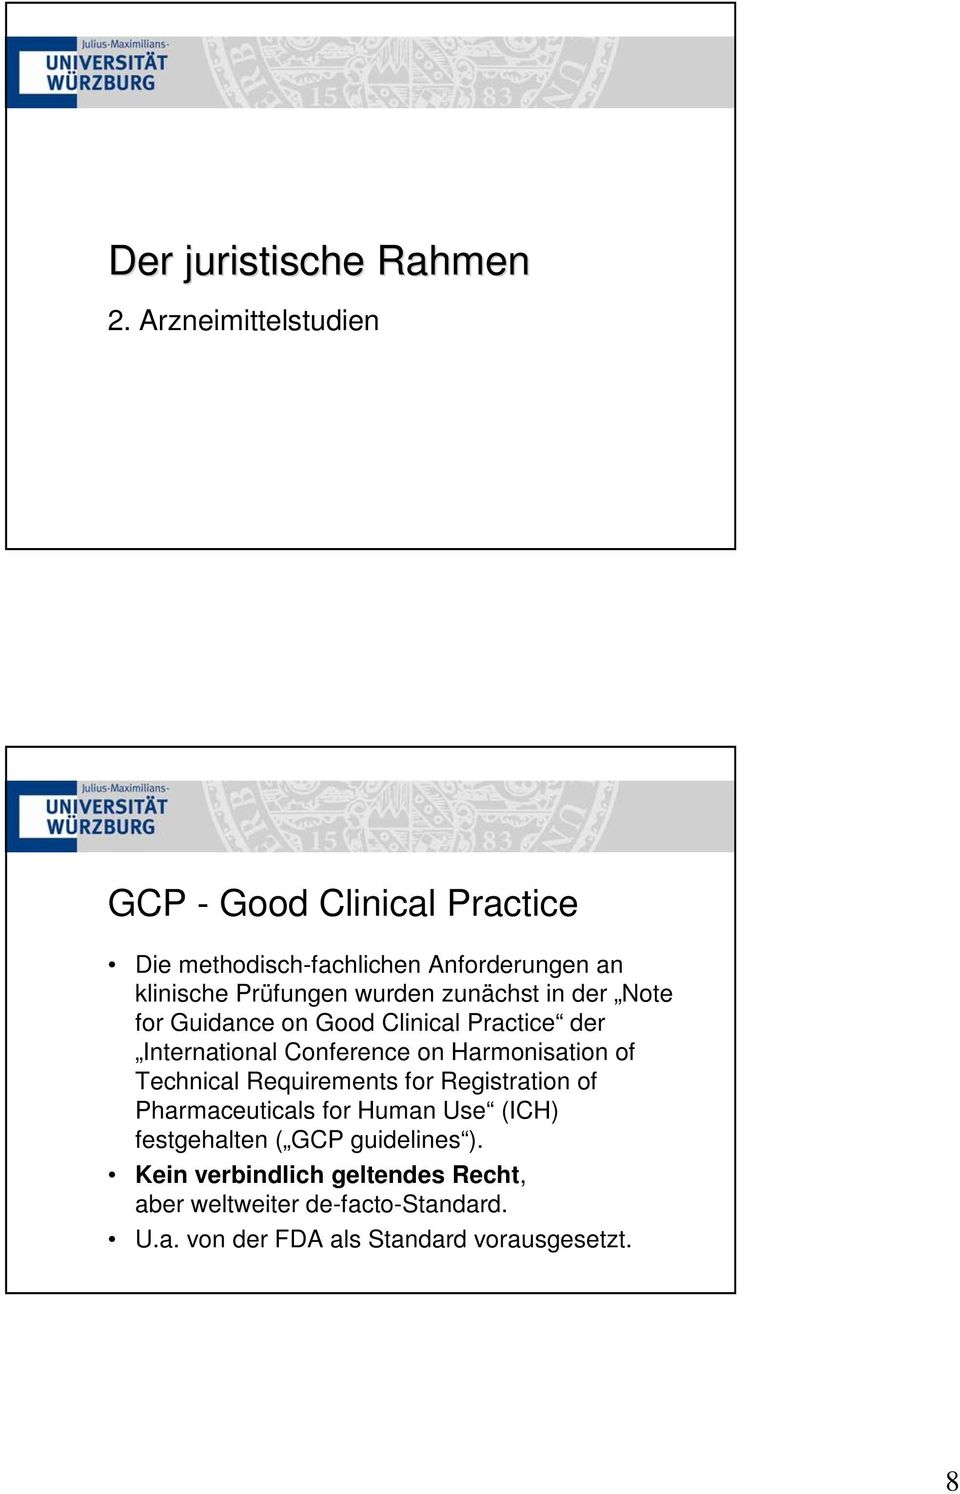 zunächst in der Note for Guidance on Good Clinical Practice der International Conference on Harmonisation of Technical